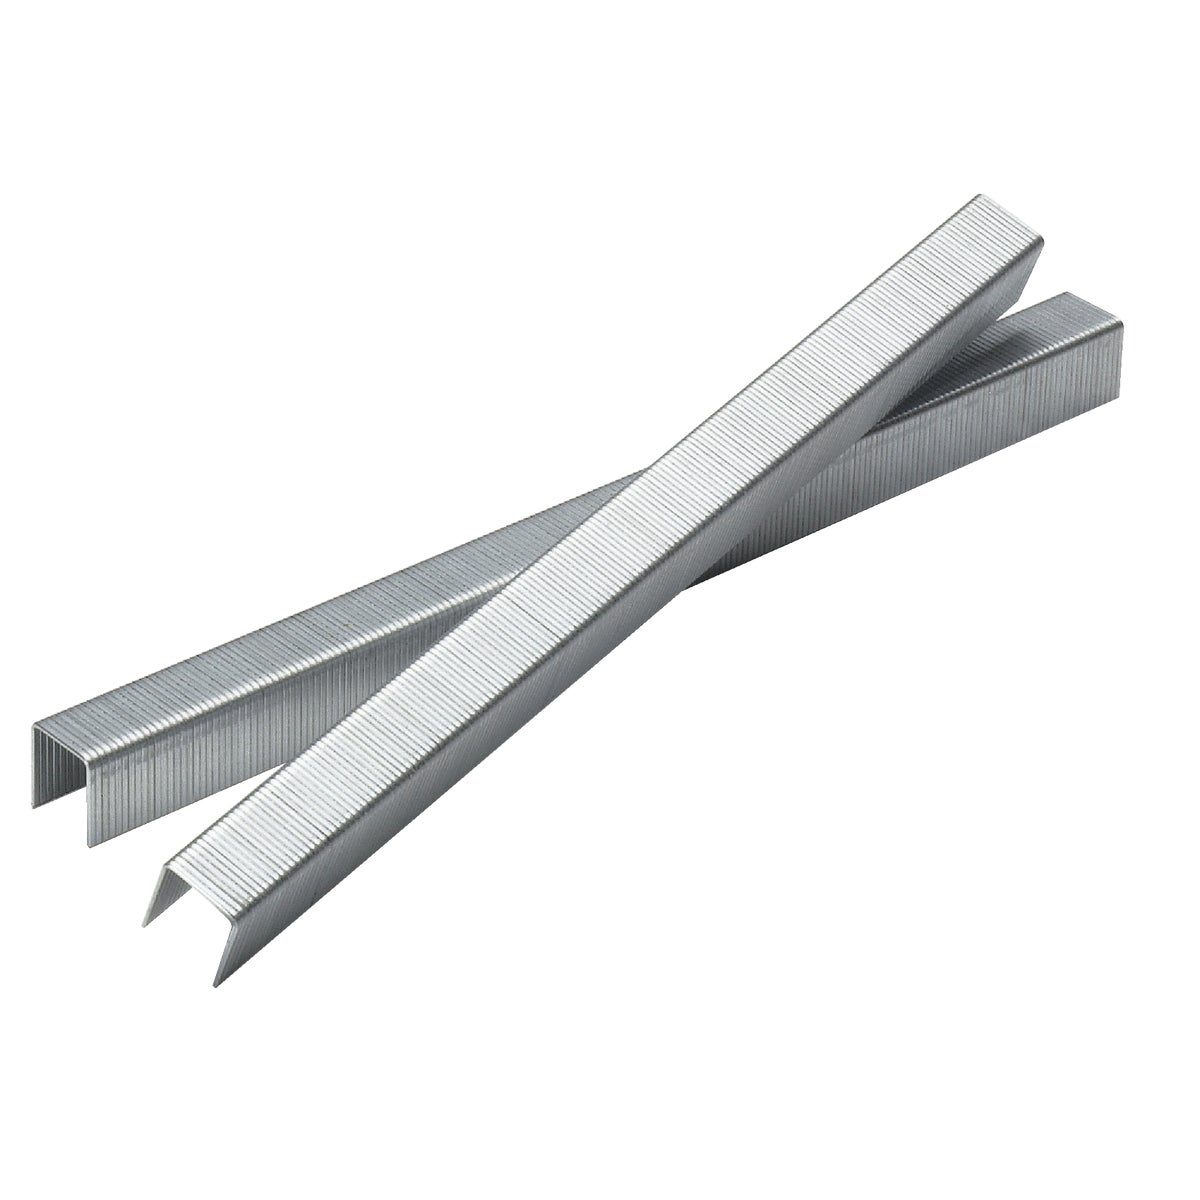 "700CT 18GA 1-1/4"" STAPLE - A801259 by Senco Brands"